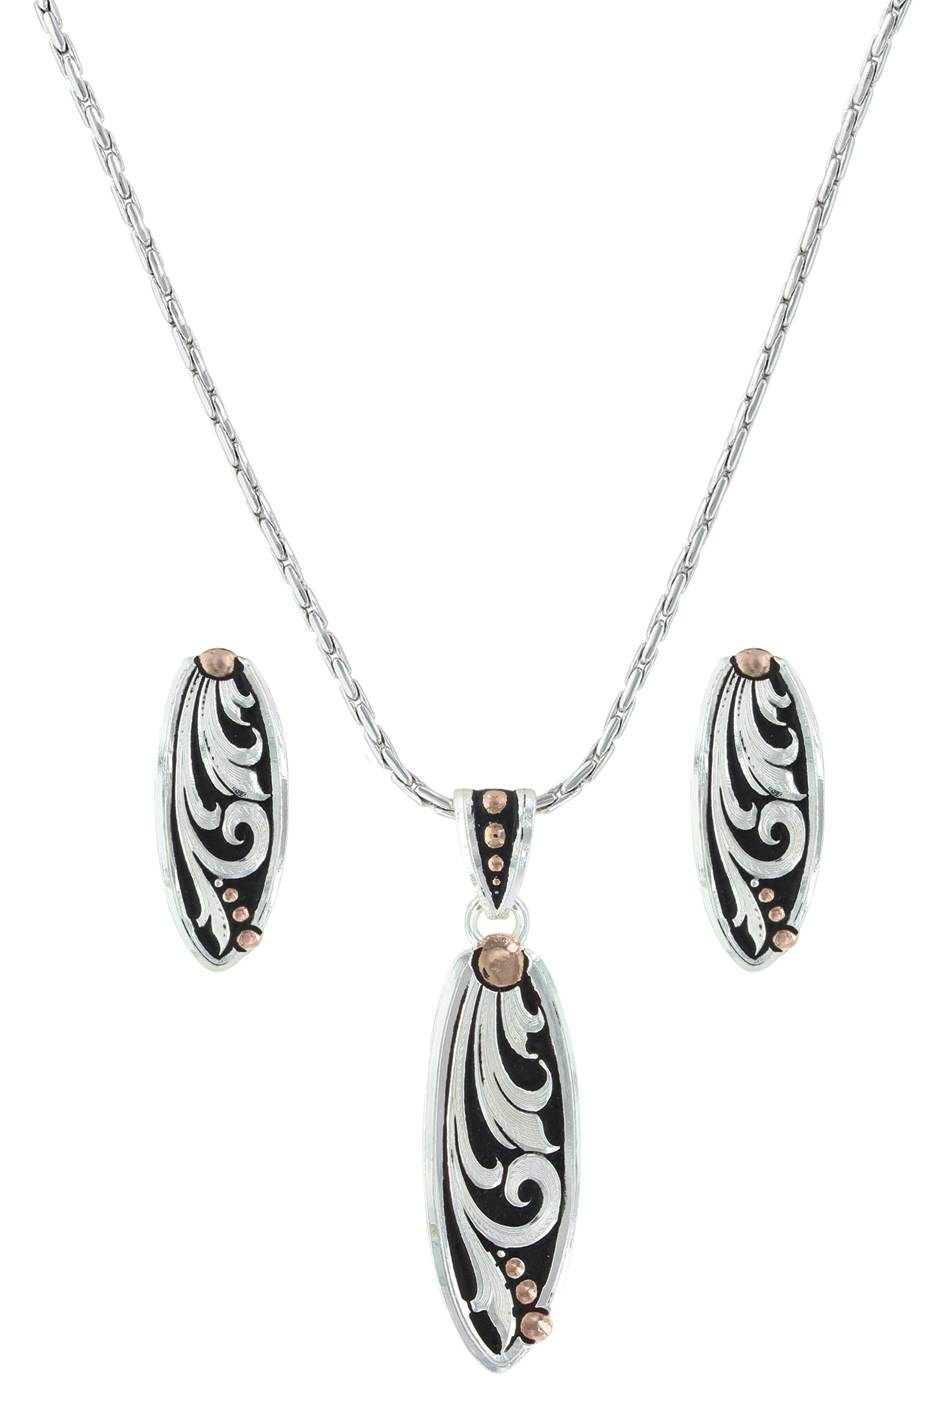 cf7e16edc51a ... $84.00 A two tone set of a curved long oval with a silver finished  filigree design with bead design in a rose gold finish with a black paint  background.